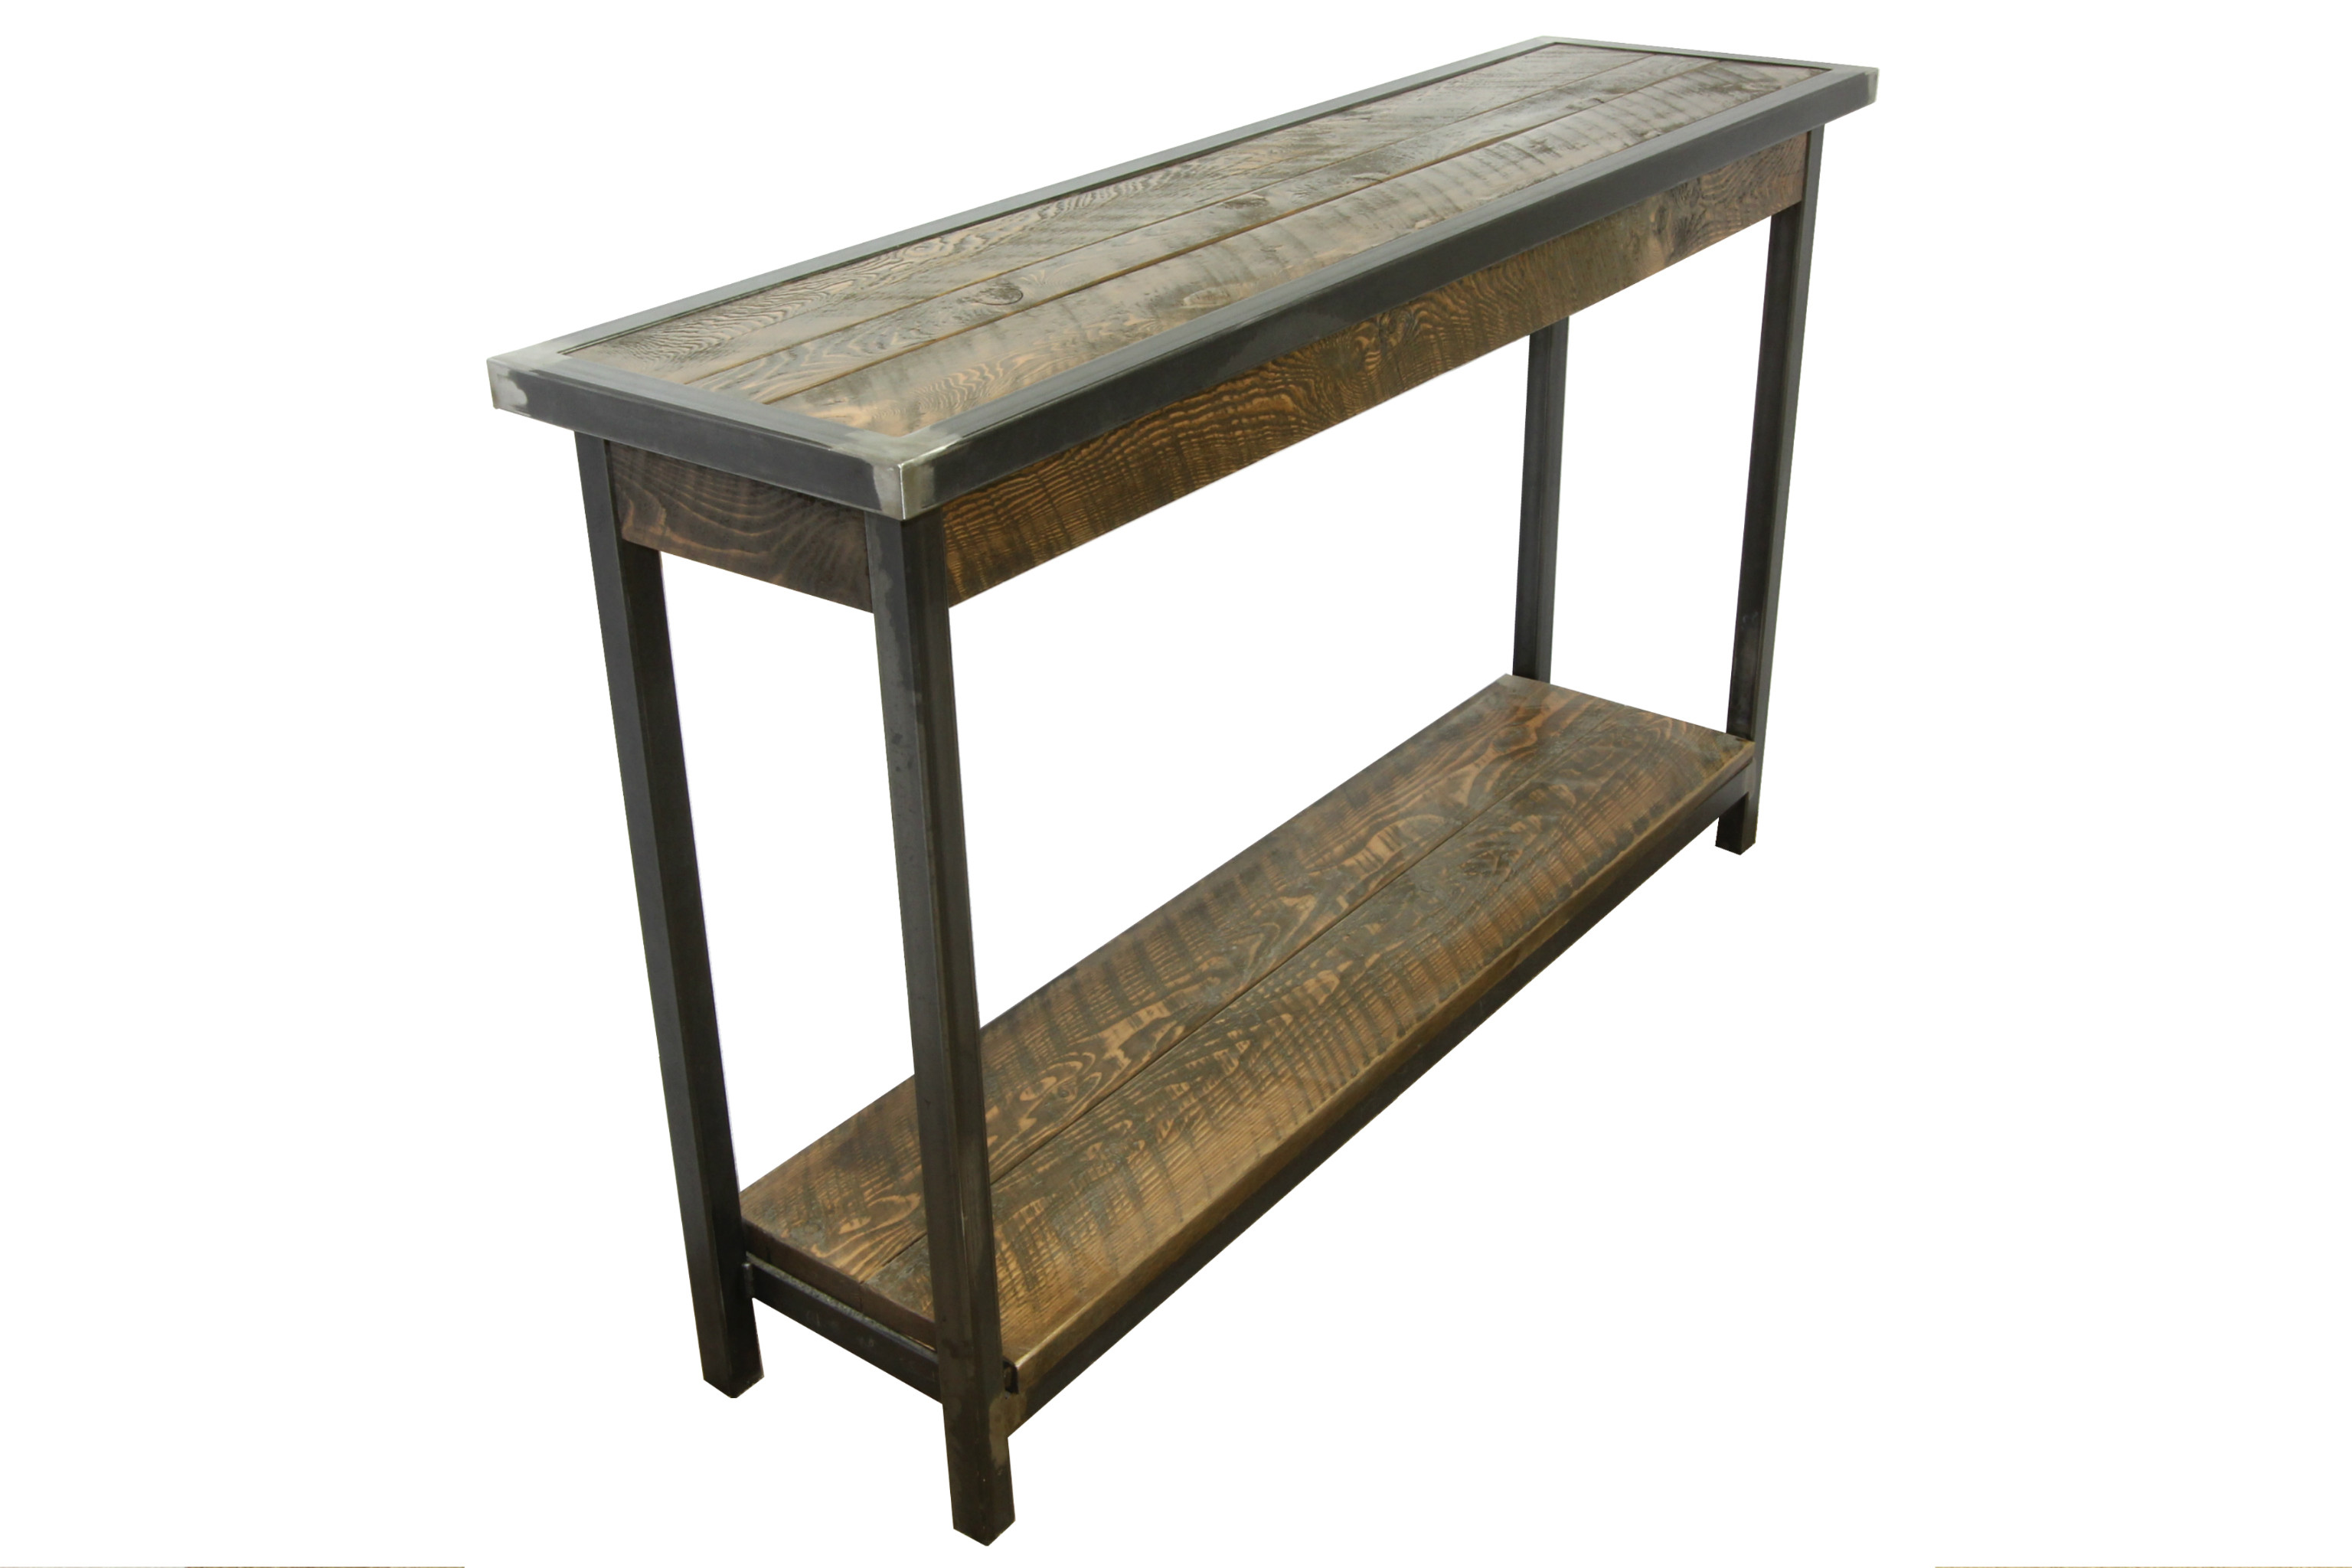 Best ideas about Metal Entryway Table . Save or Pin Industrial Metal And Wood Entry Table Now.